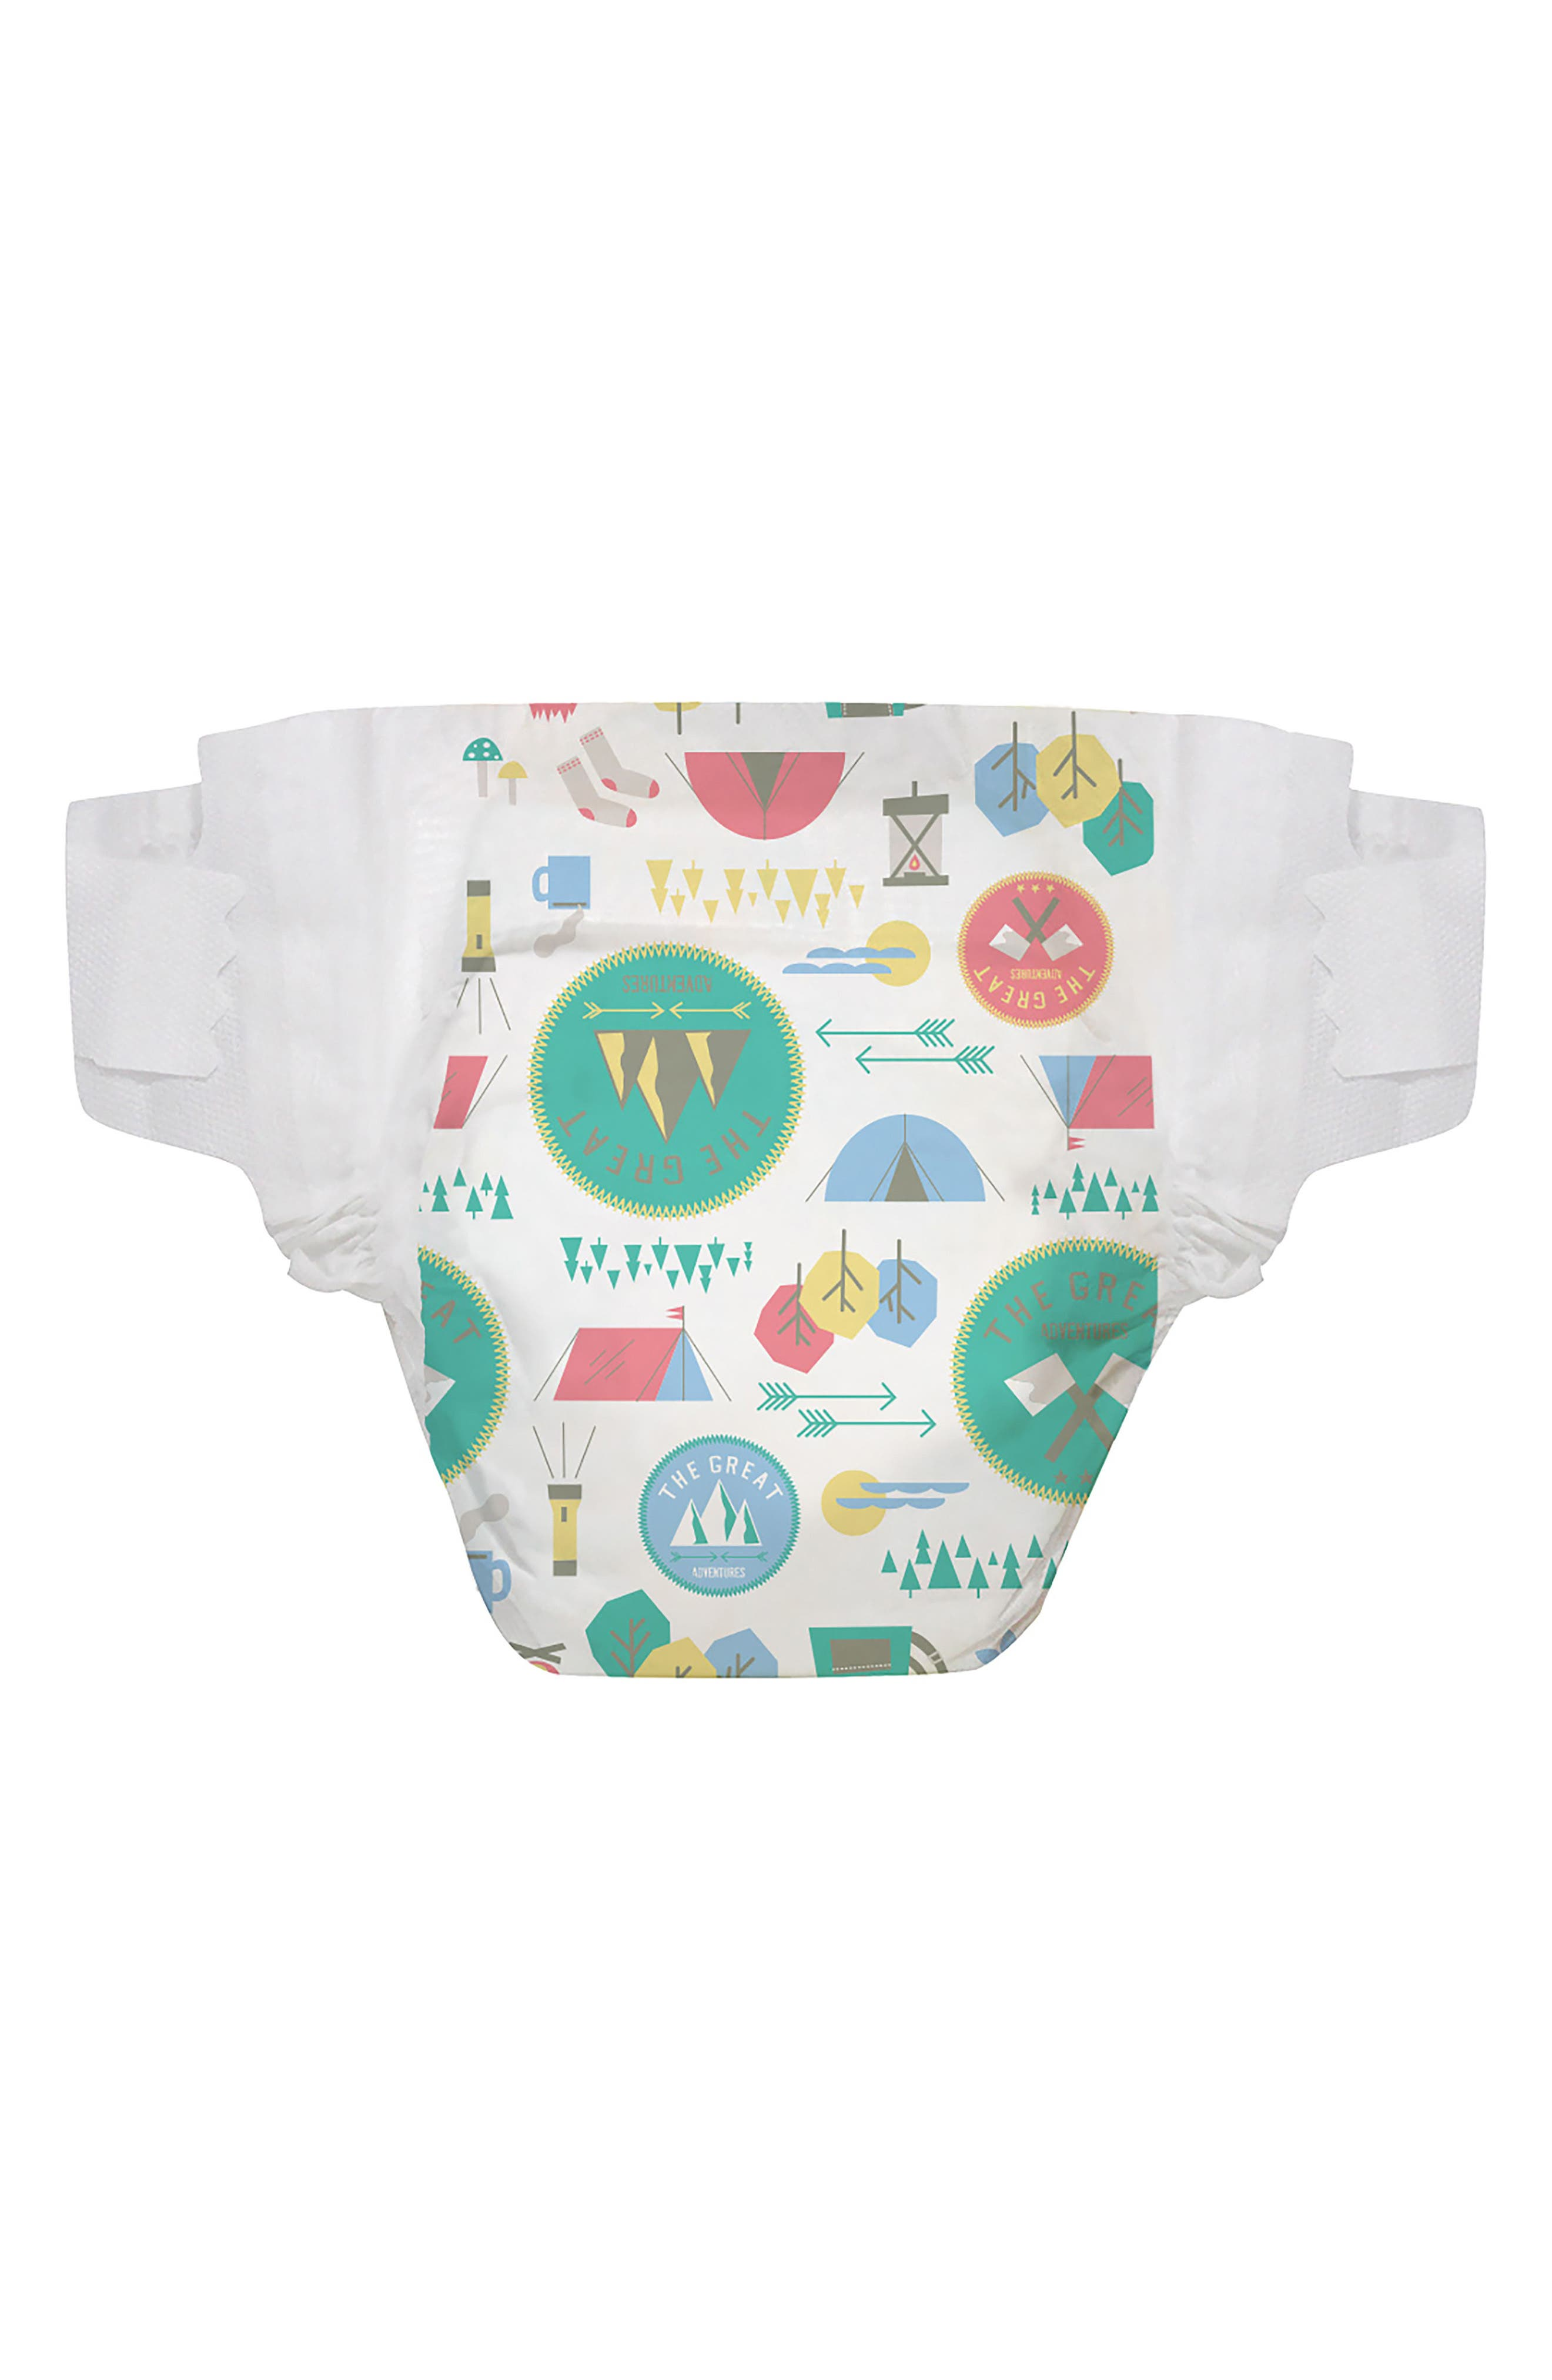 x THE GREAT. The Great Adventure Diapers,                             Main thumbnail 1, color,                             The Great Adventure